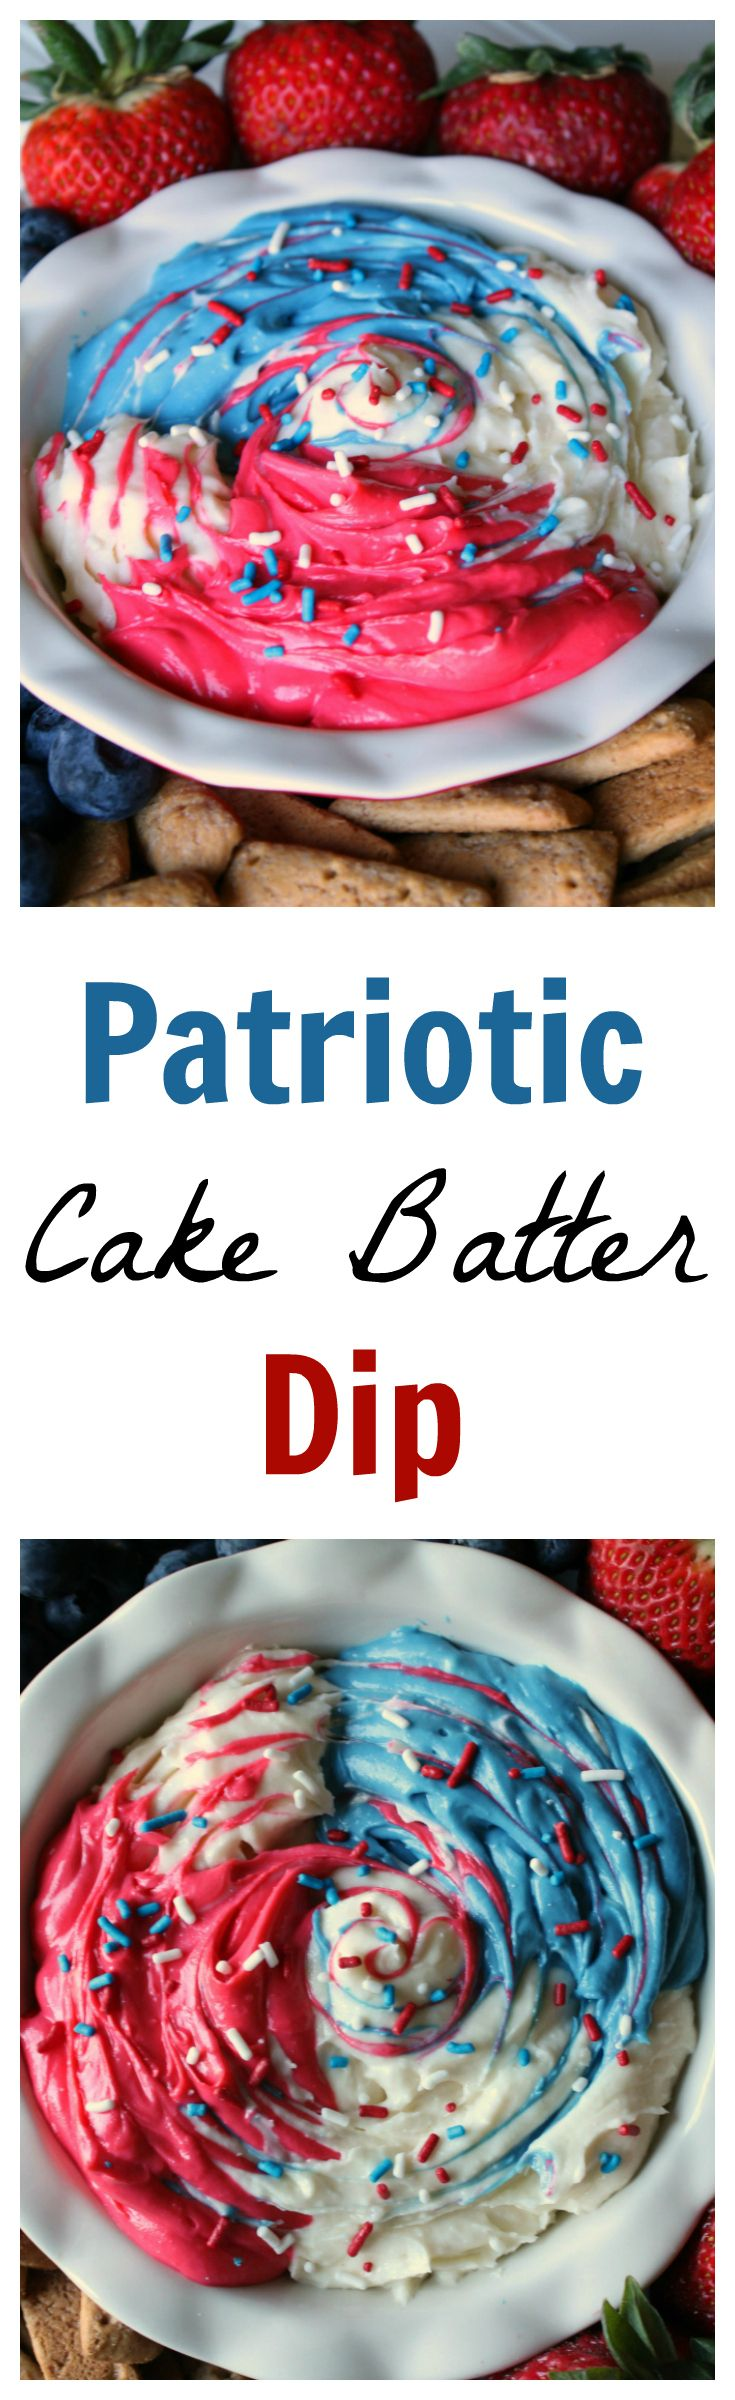 Patriotic Cake Batter Dip – A super simple dip perfect for patriotic holidays! Great for a party and it tastes fantastic!